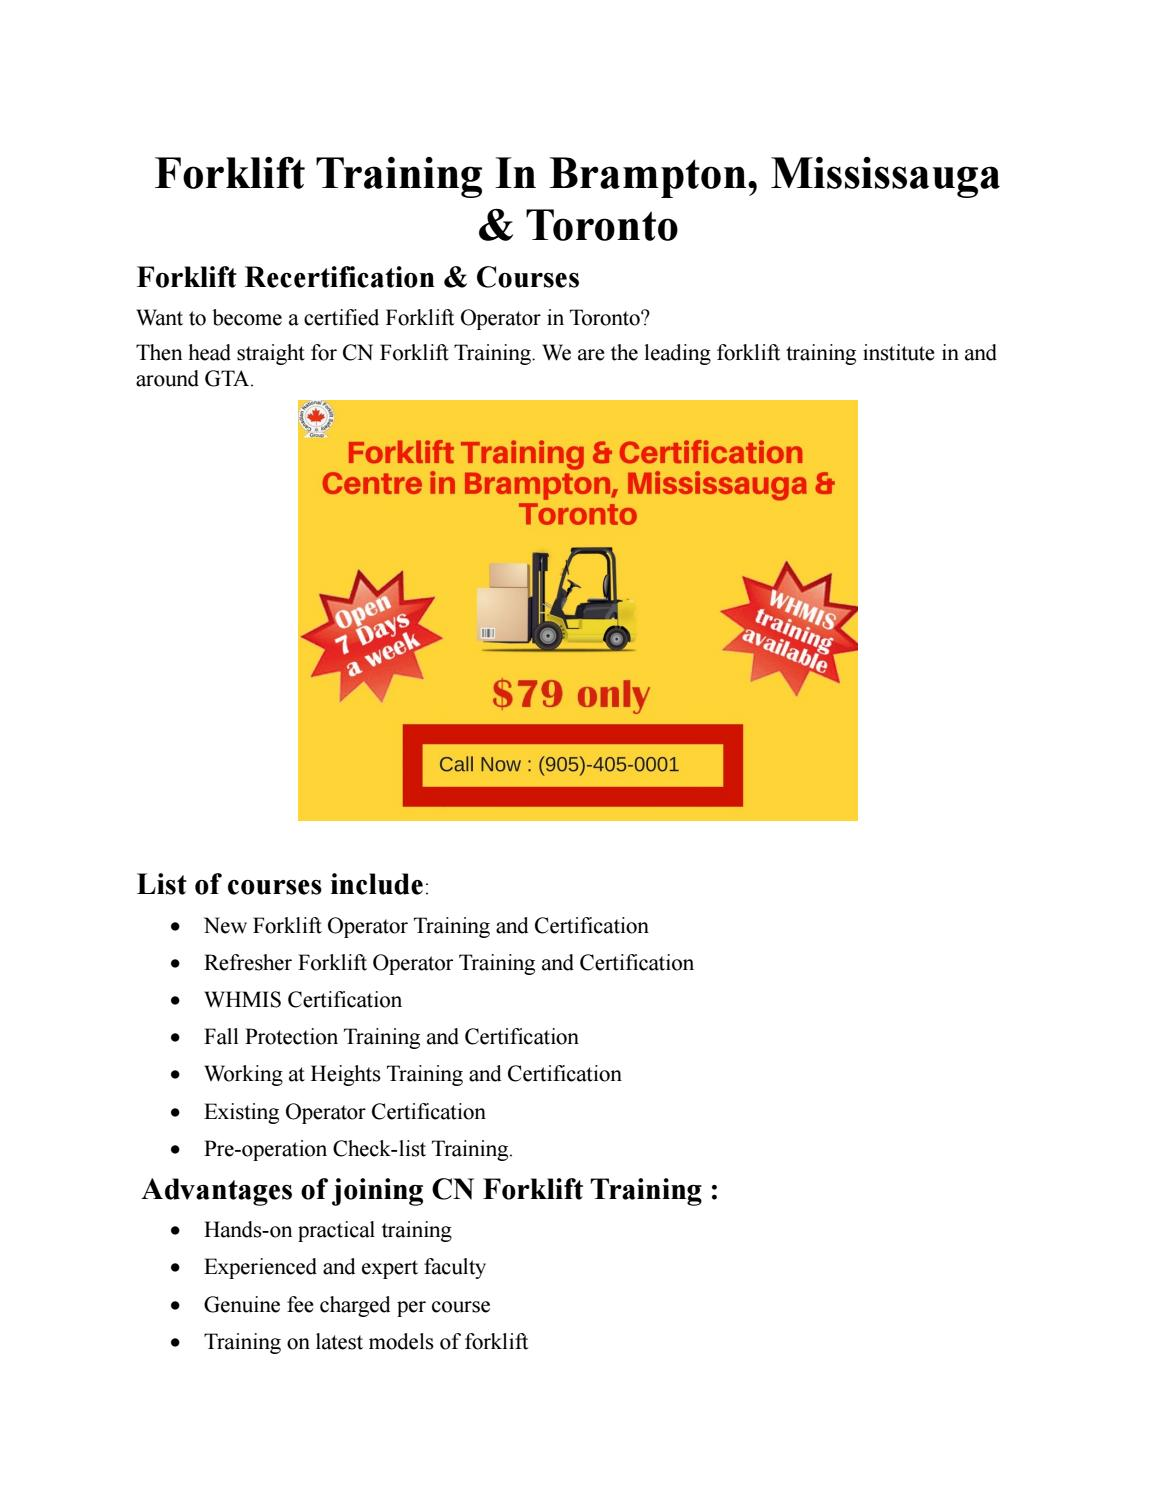 Forklift Training In Brampton Mississauga And Toronto By Cn